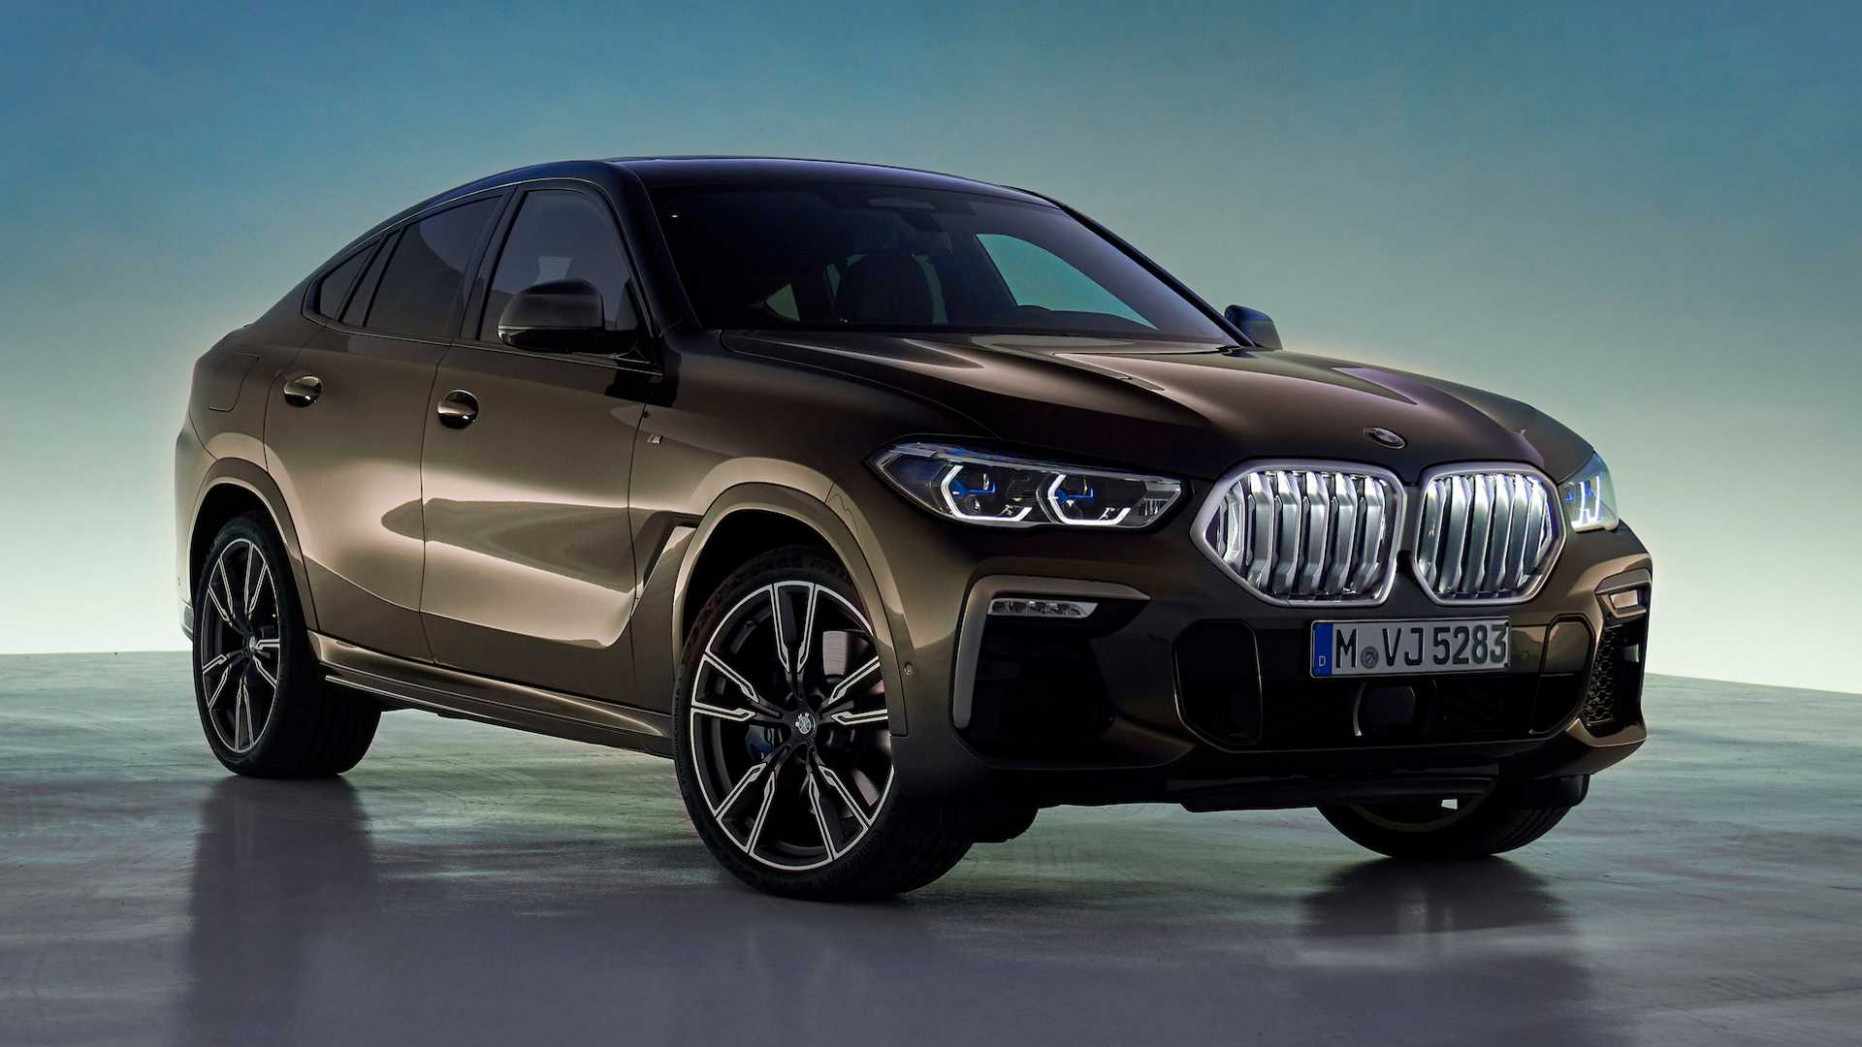 7 BMW X7 debuts with 7-bhp twin-turbo V7, light-up grille - bmw lineup 2020